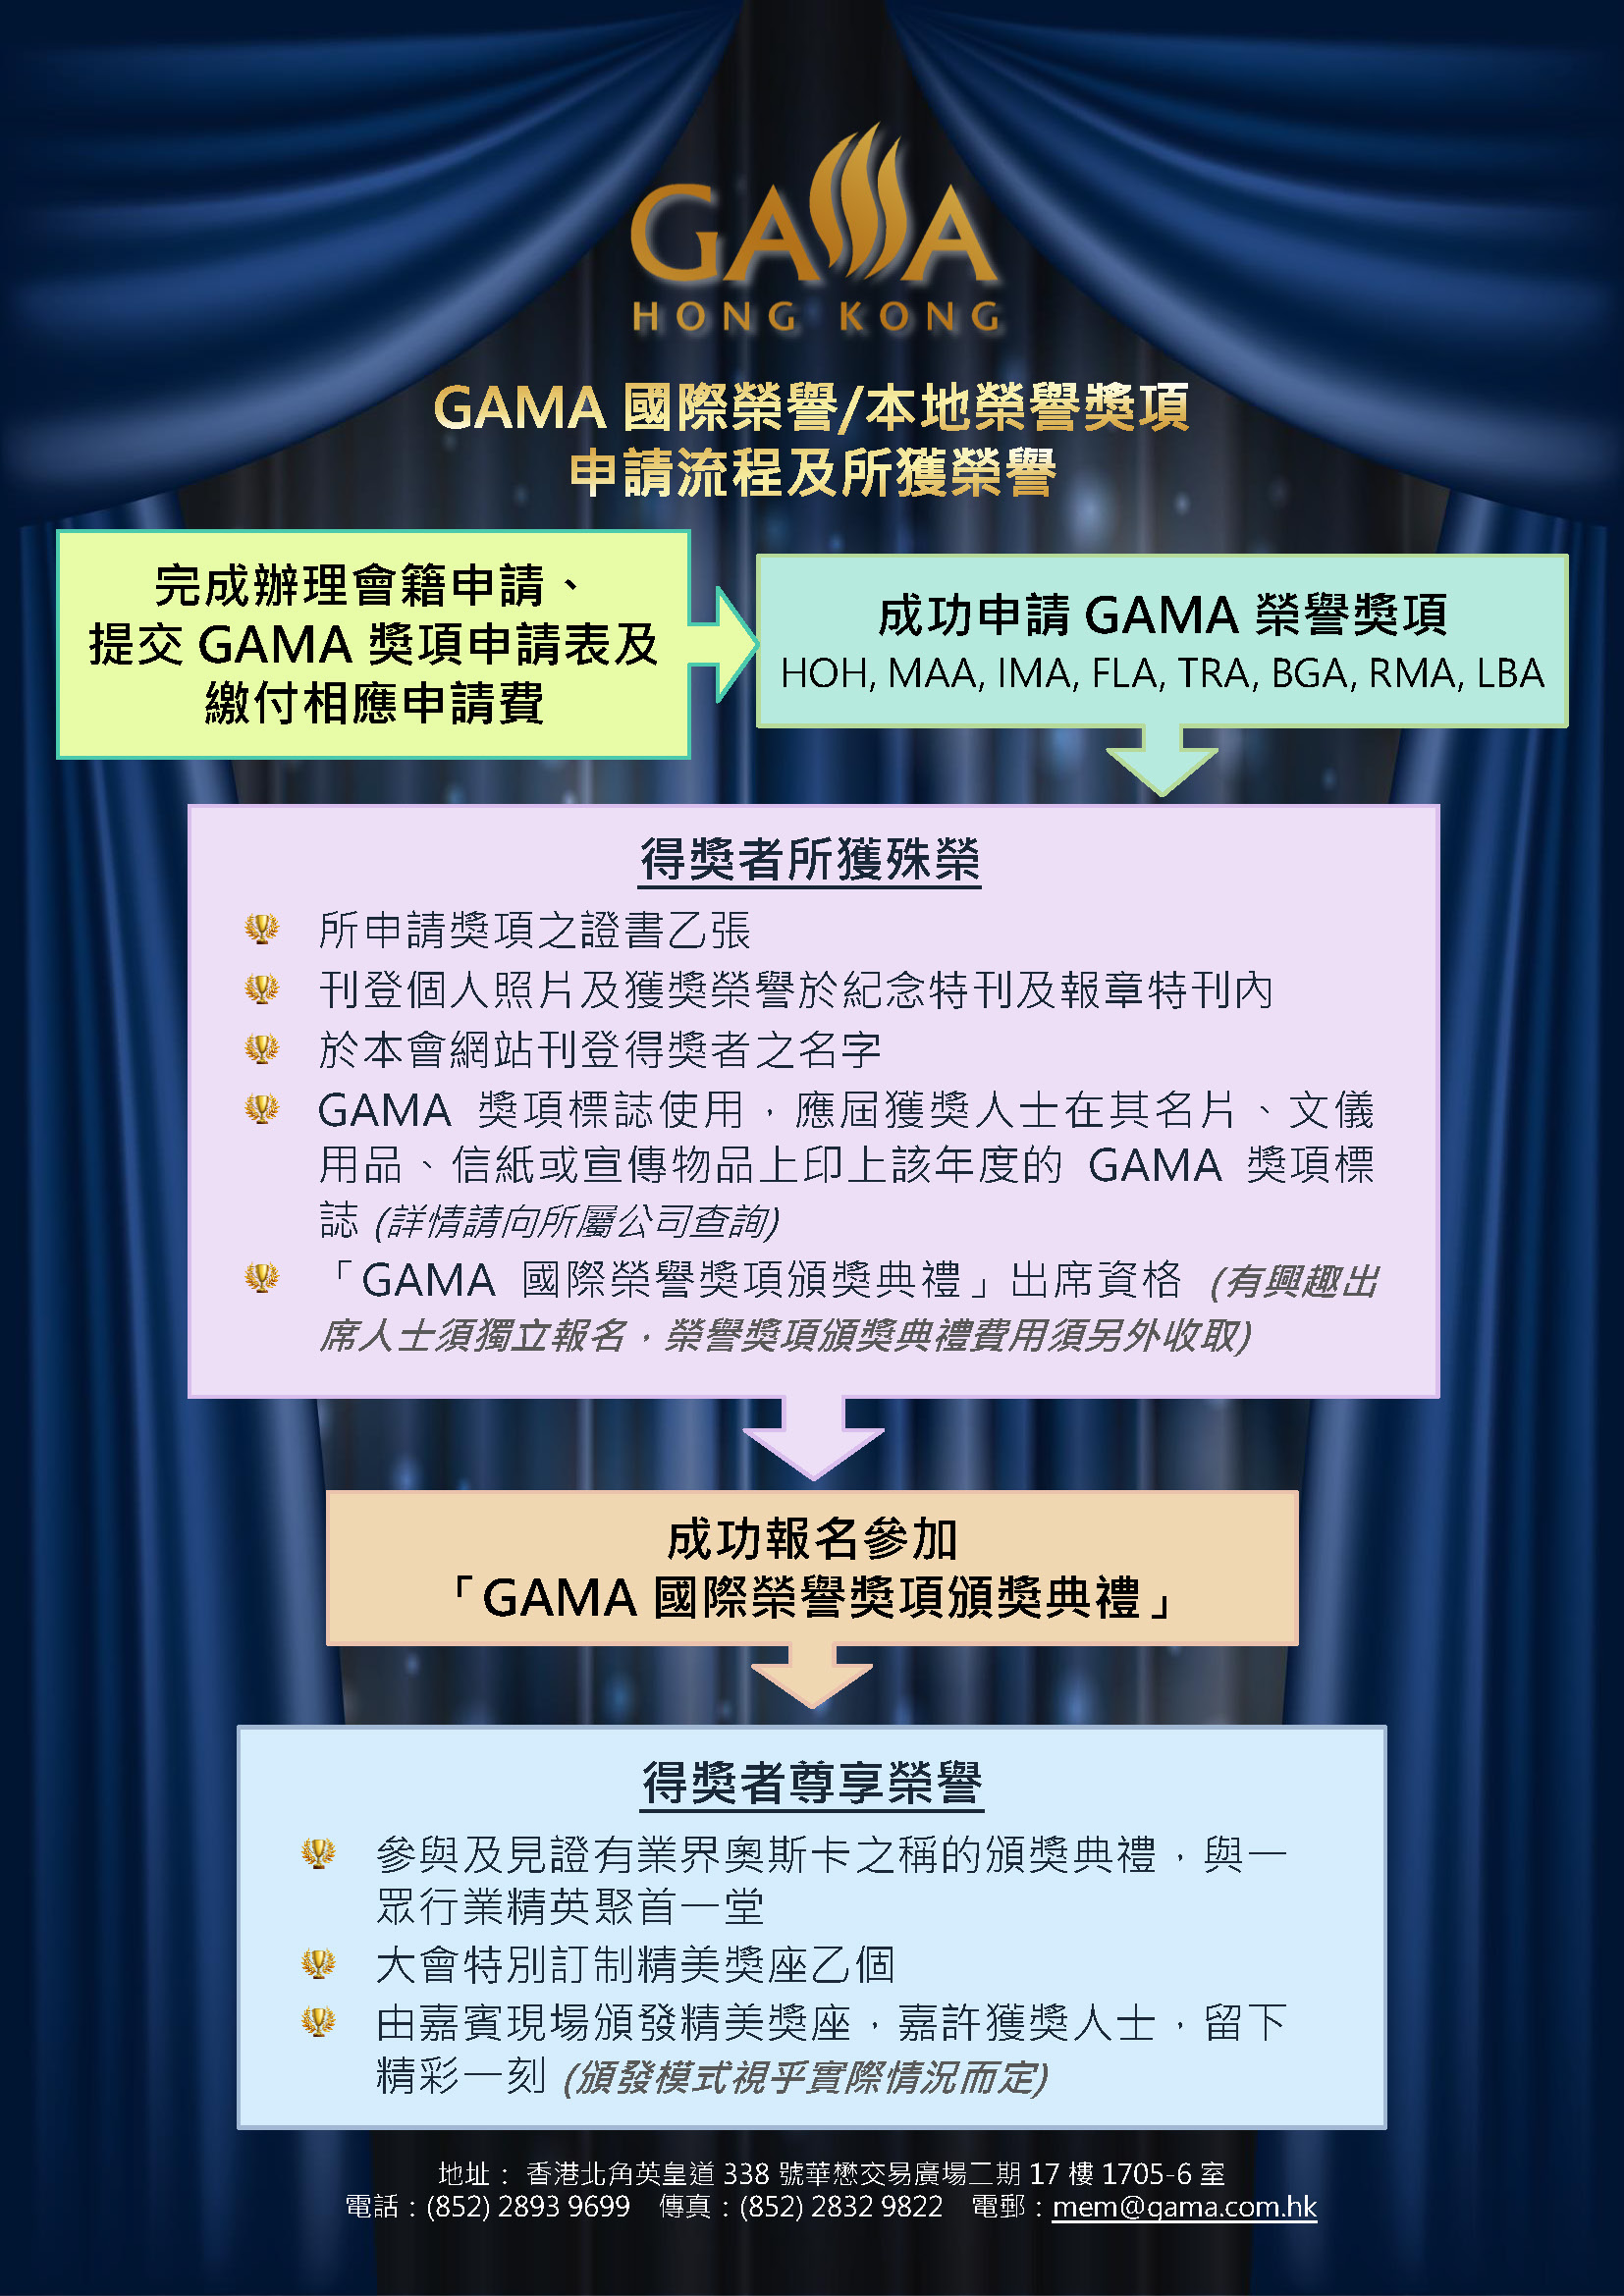 GAMA Awards Application Flow Chart